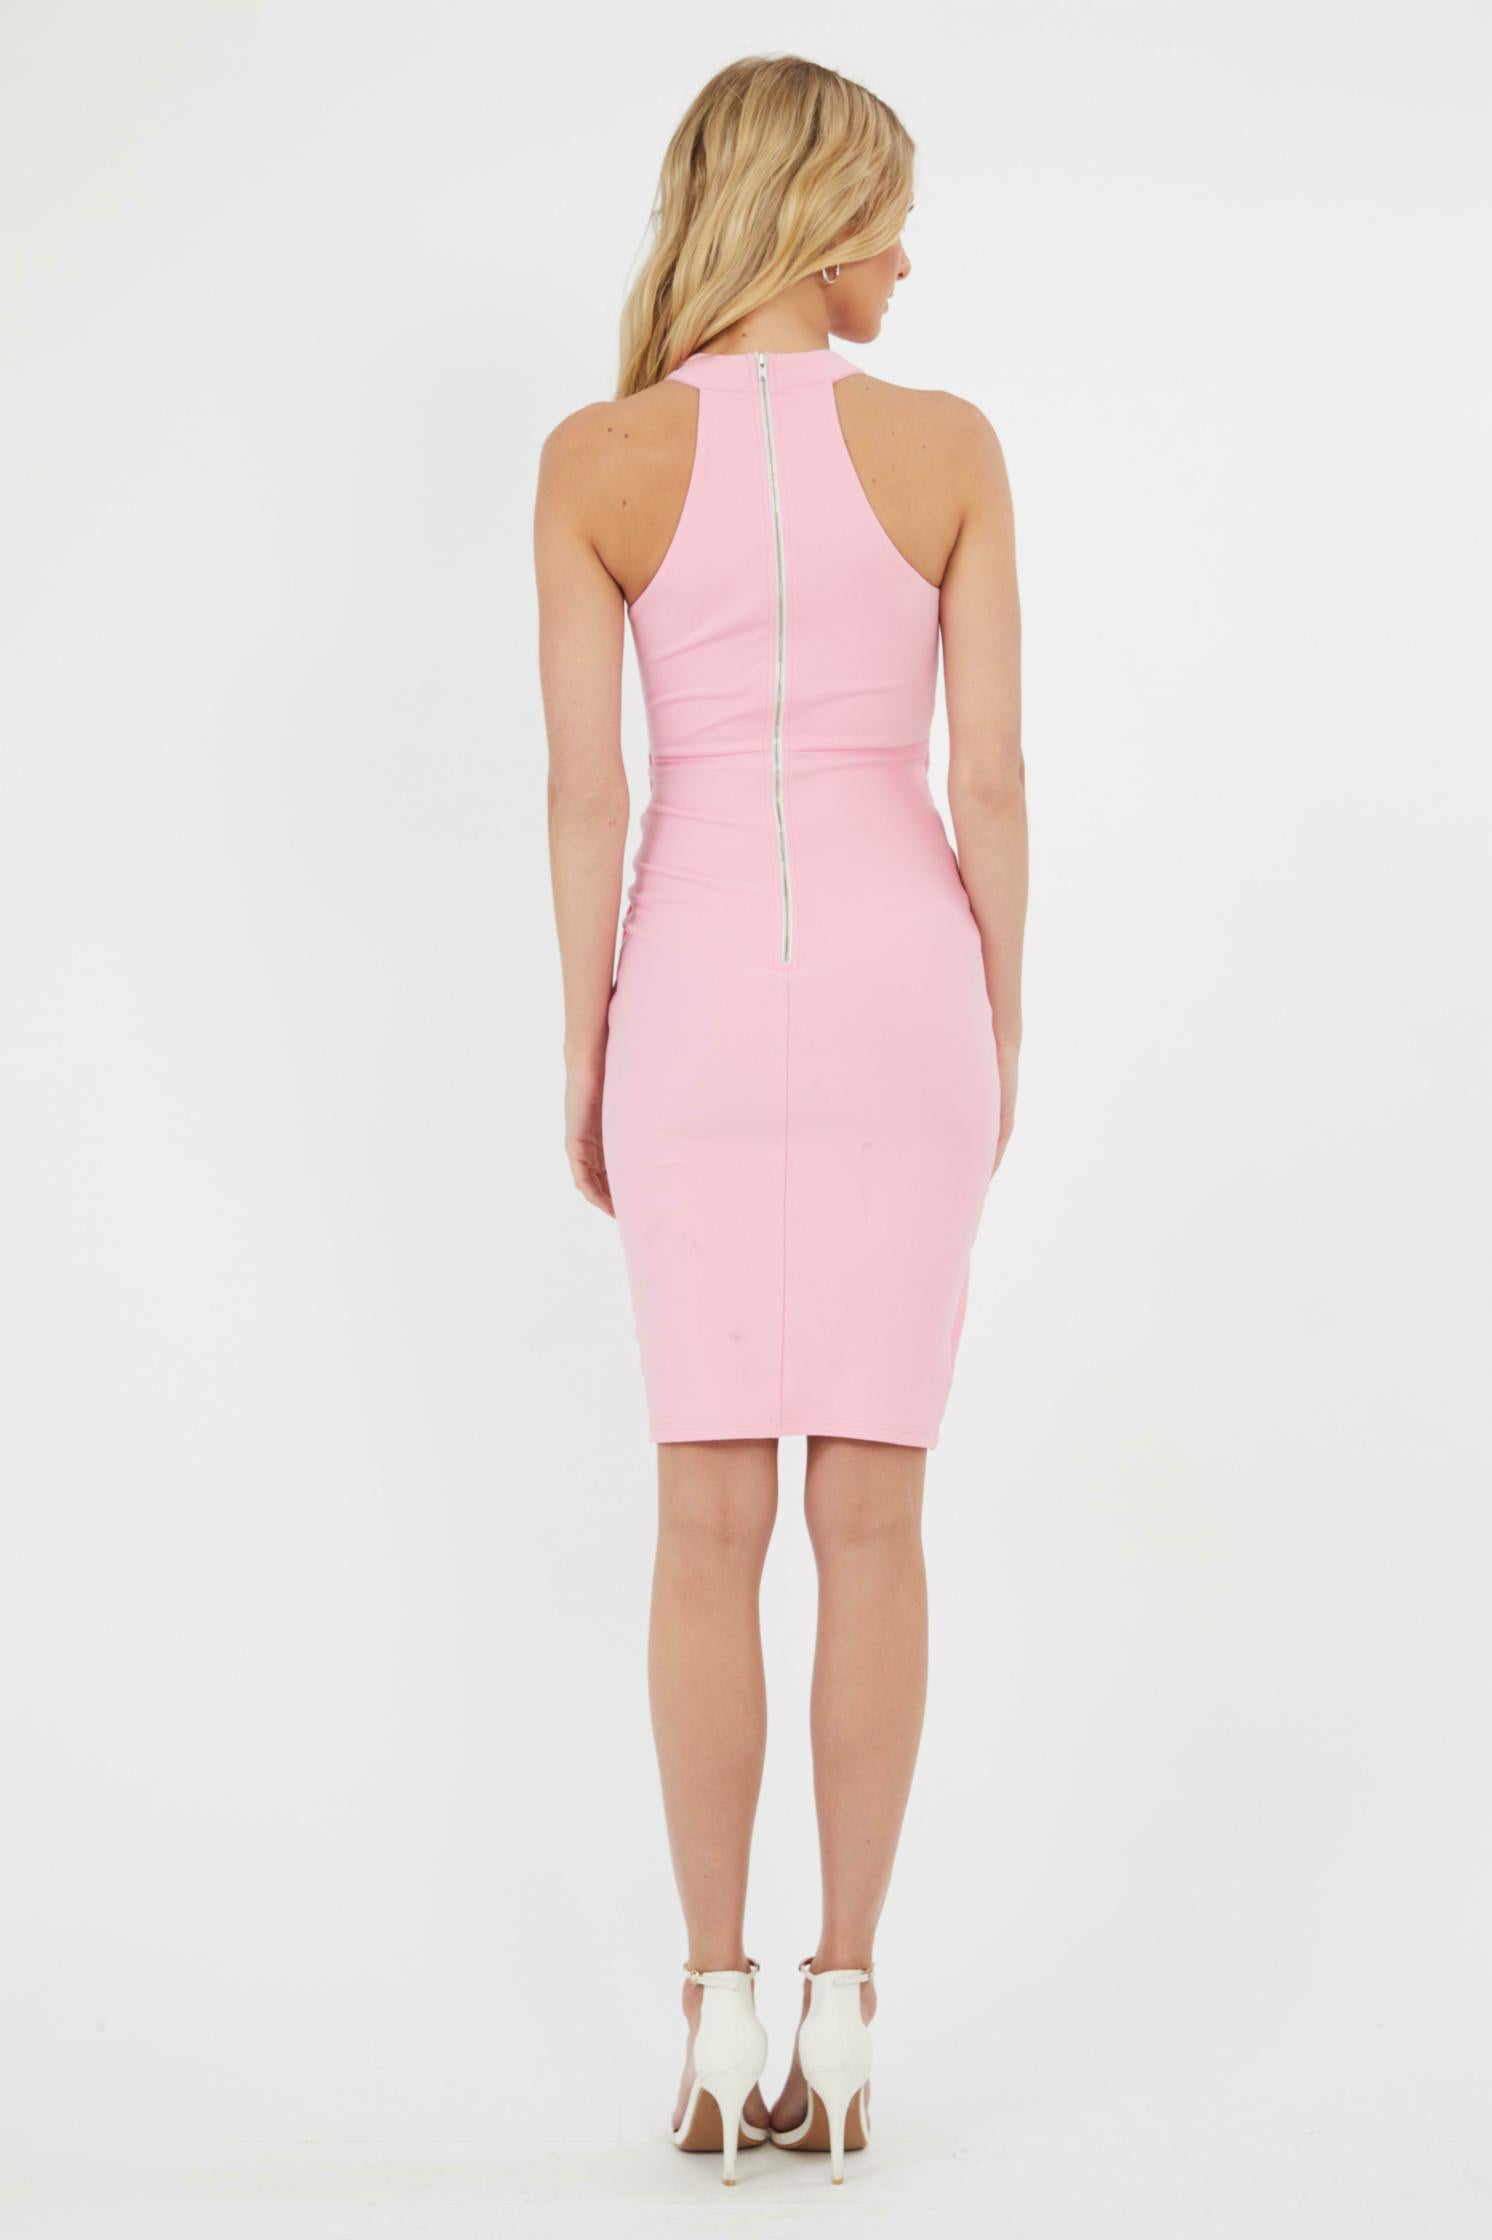 Mira Dress in Candy Pink by Fresh Soul